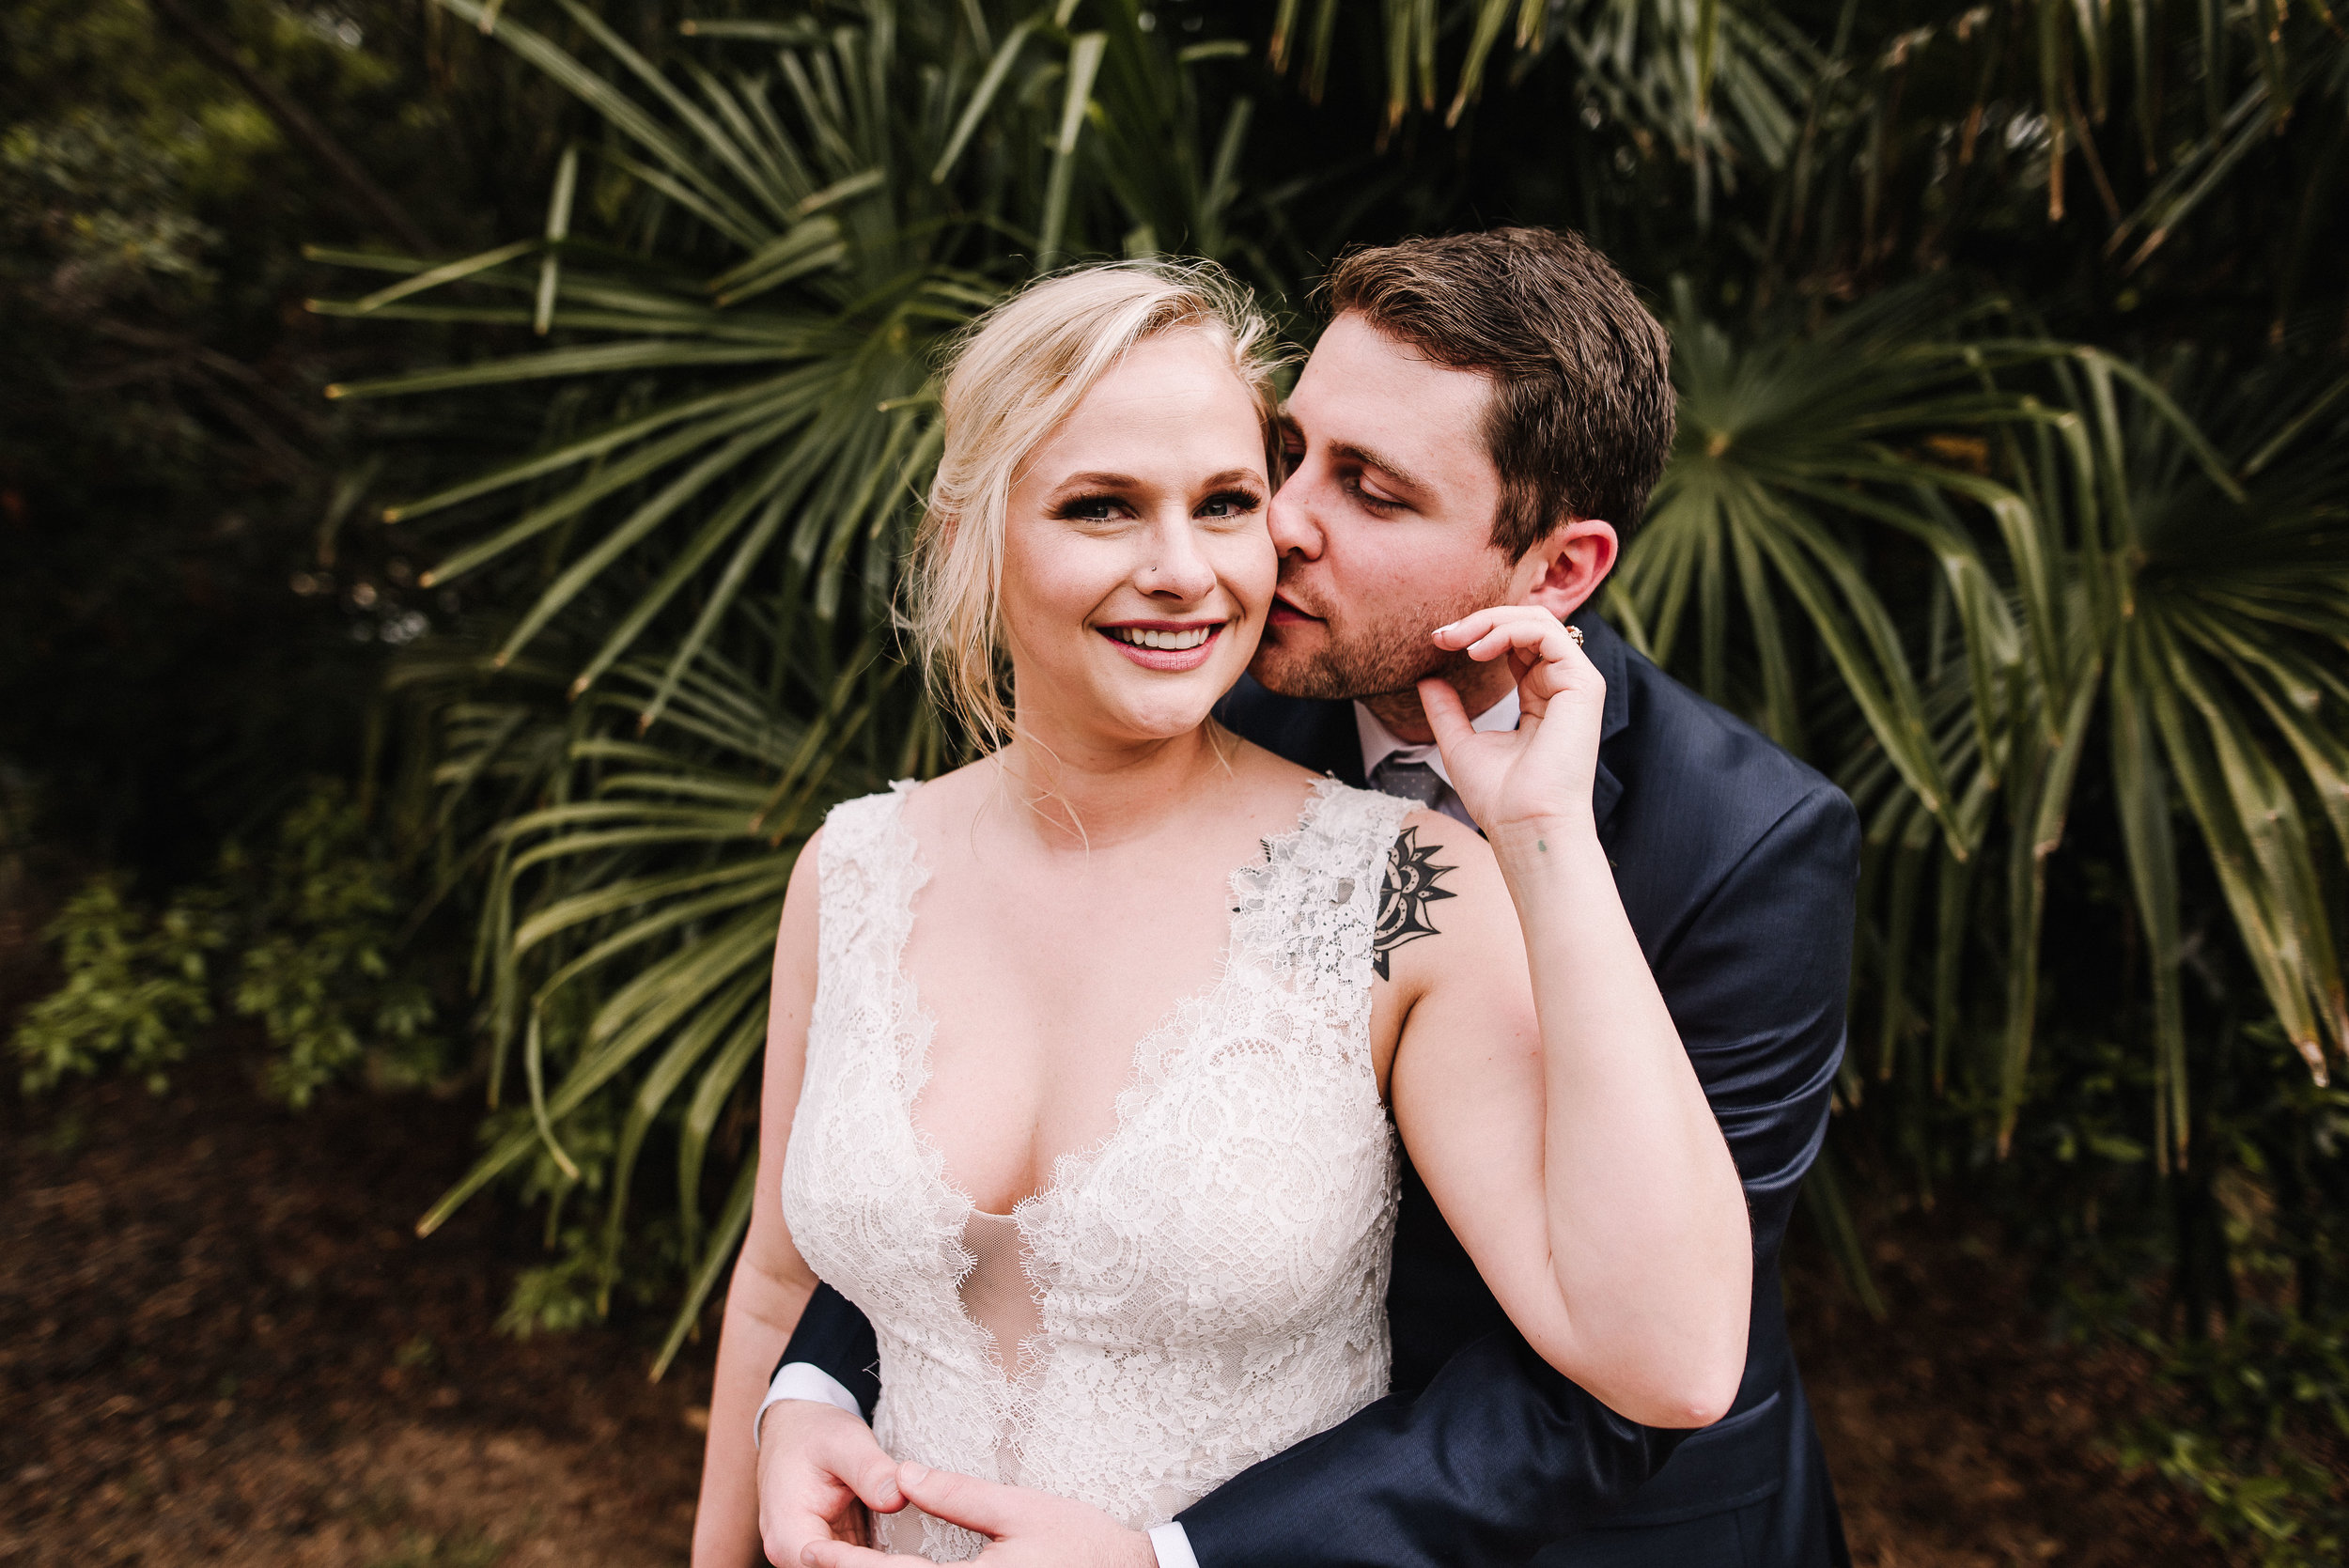 Morgan Wedding_Mill at Yellow River_Ashley Benham Photography-848.jpg